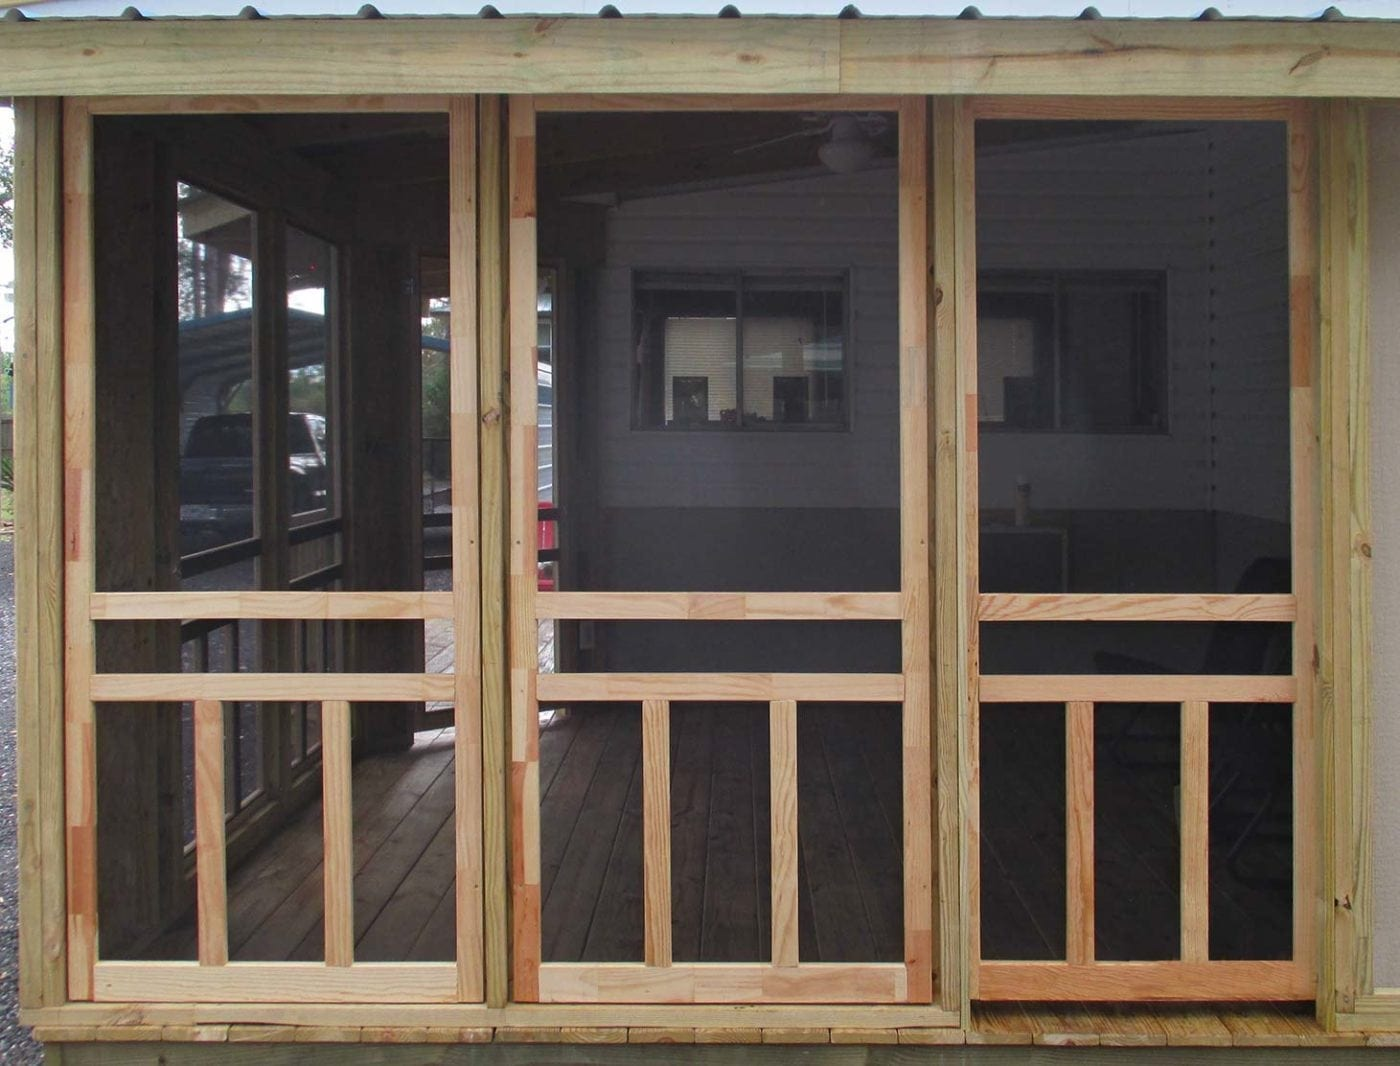 Porch Framed with Screen Doors